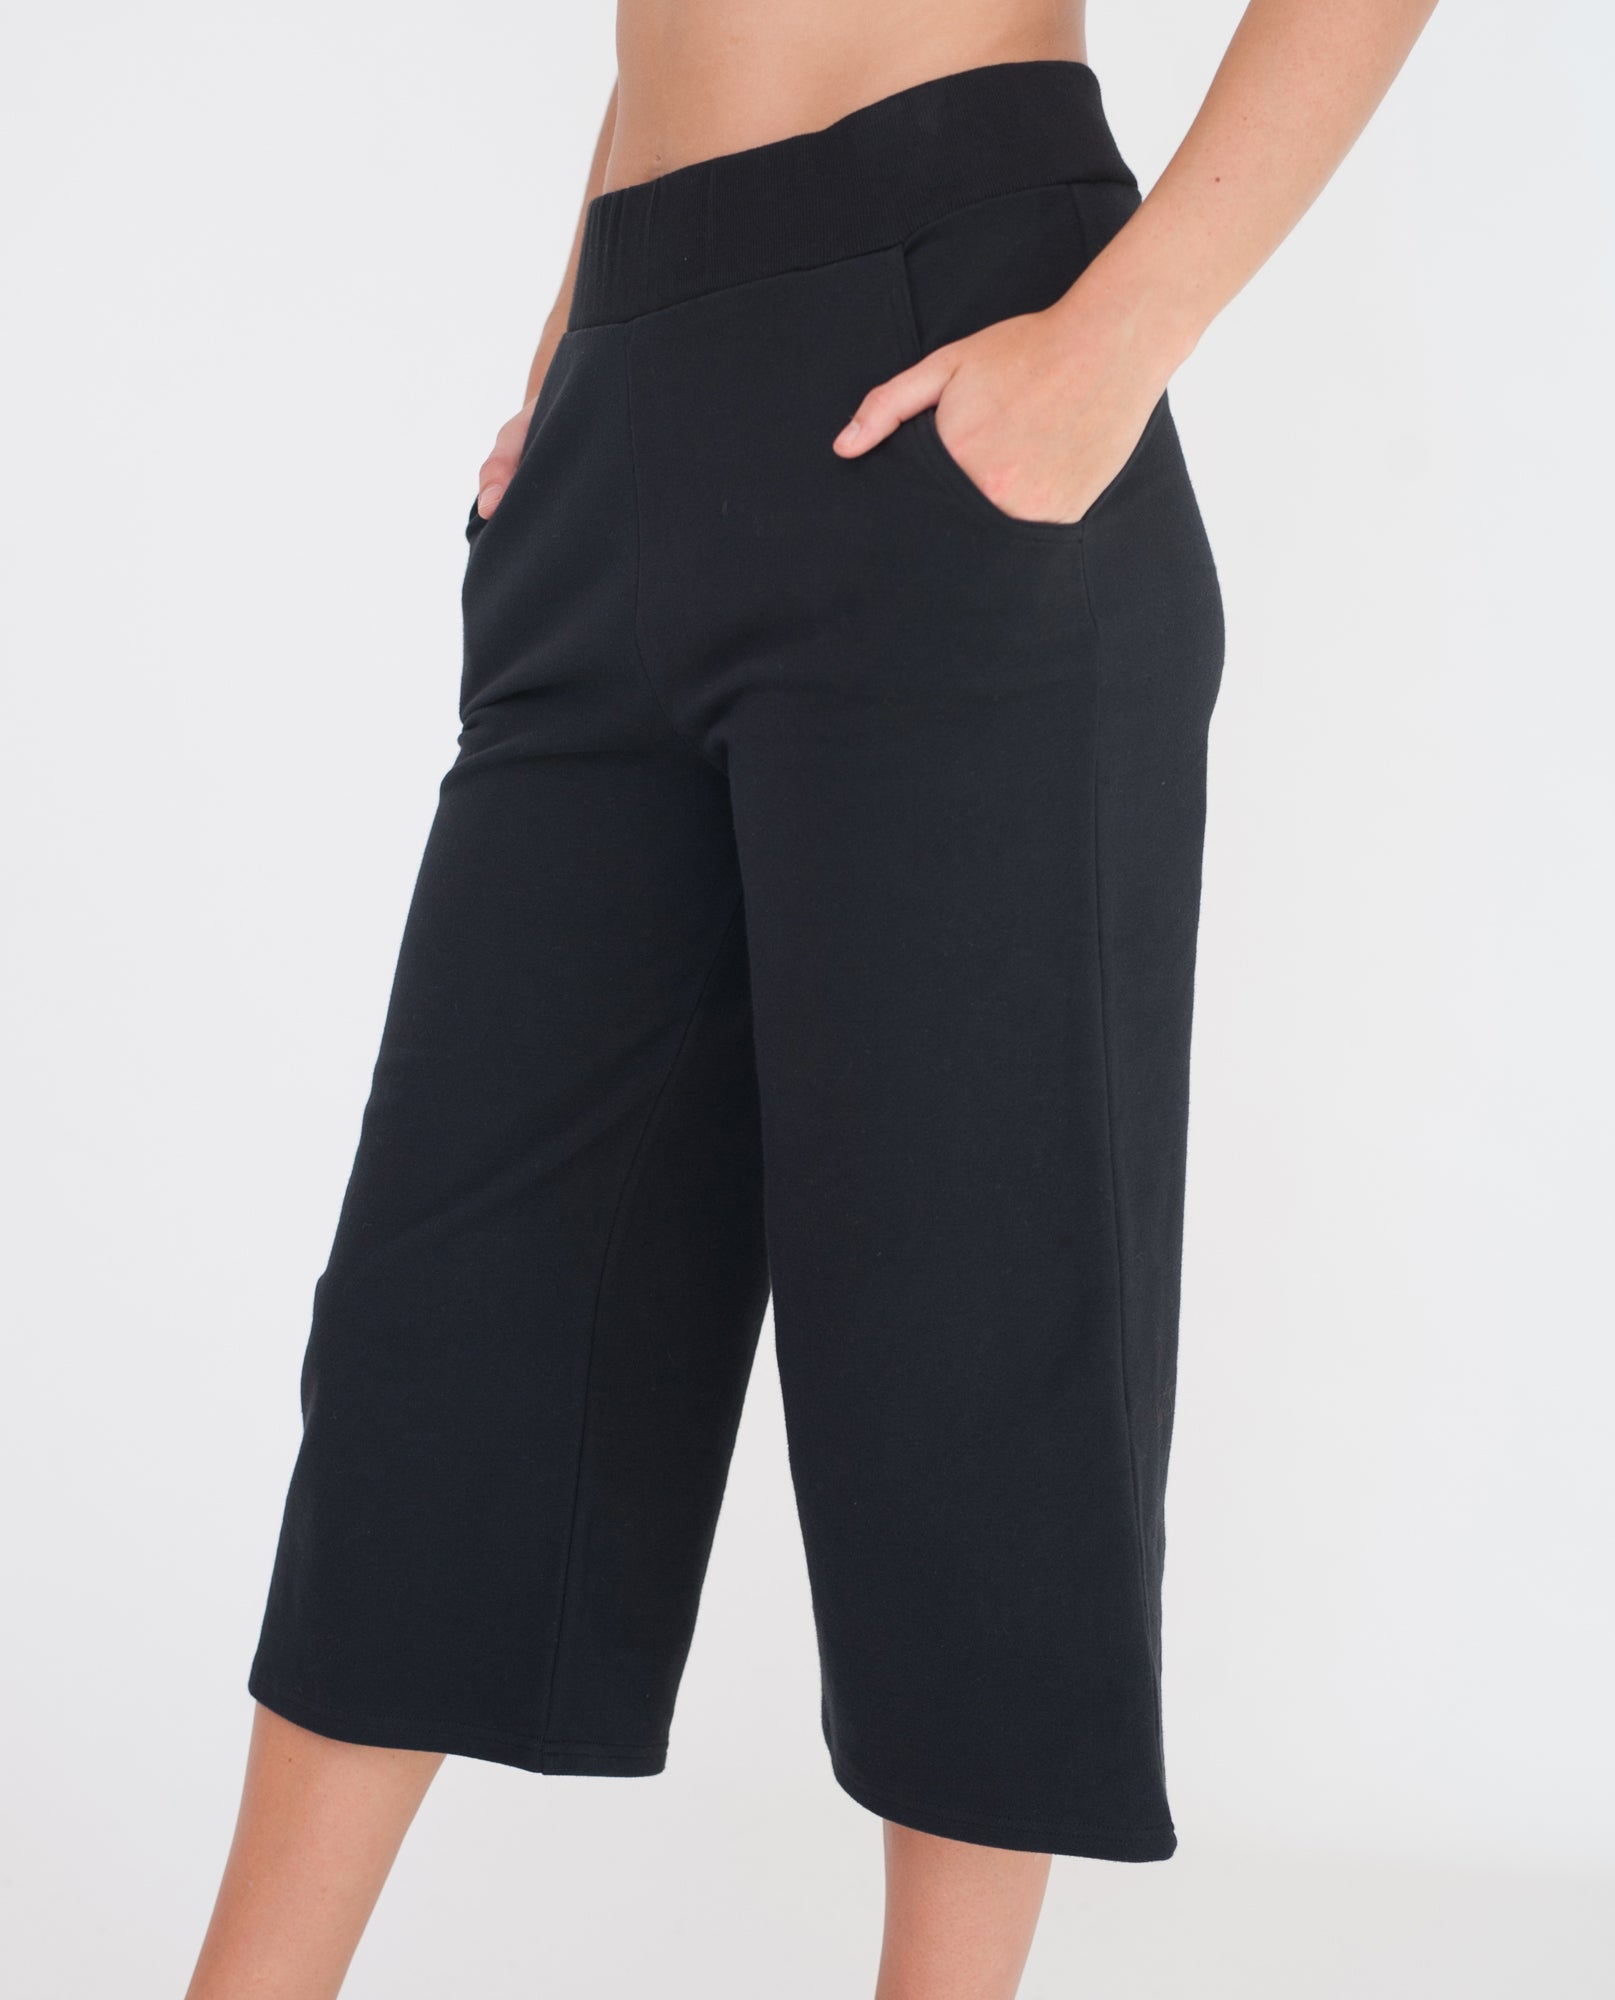 IZZY Organic Cotton Culottes In Black